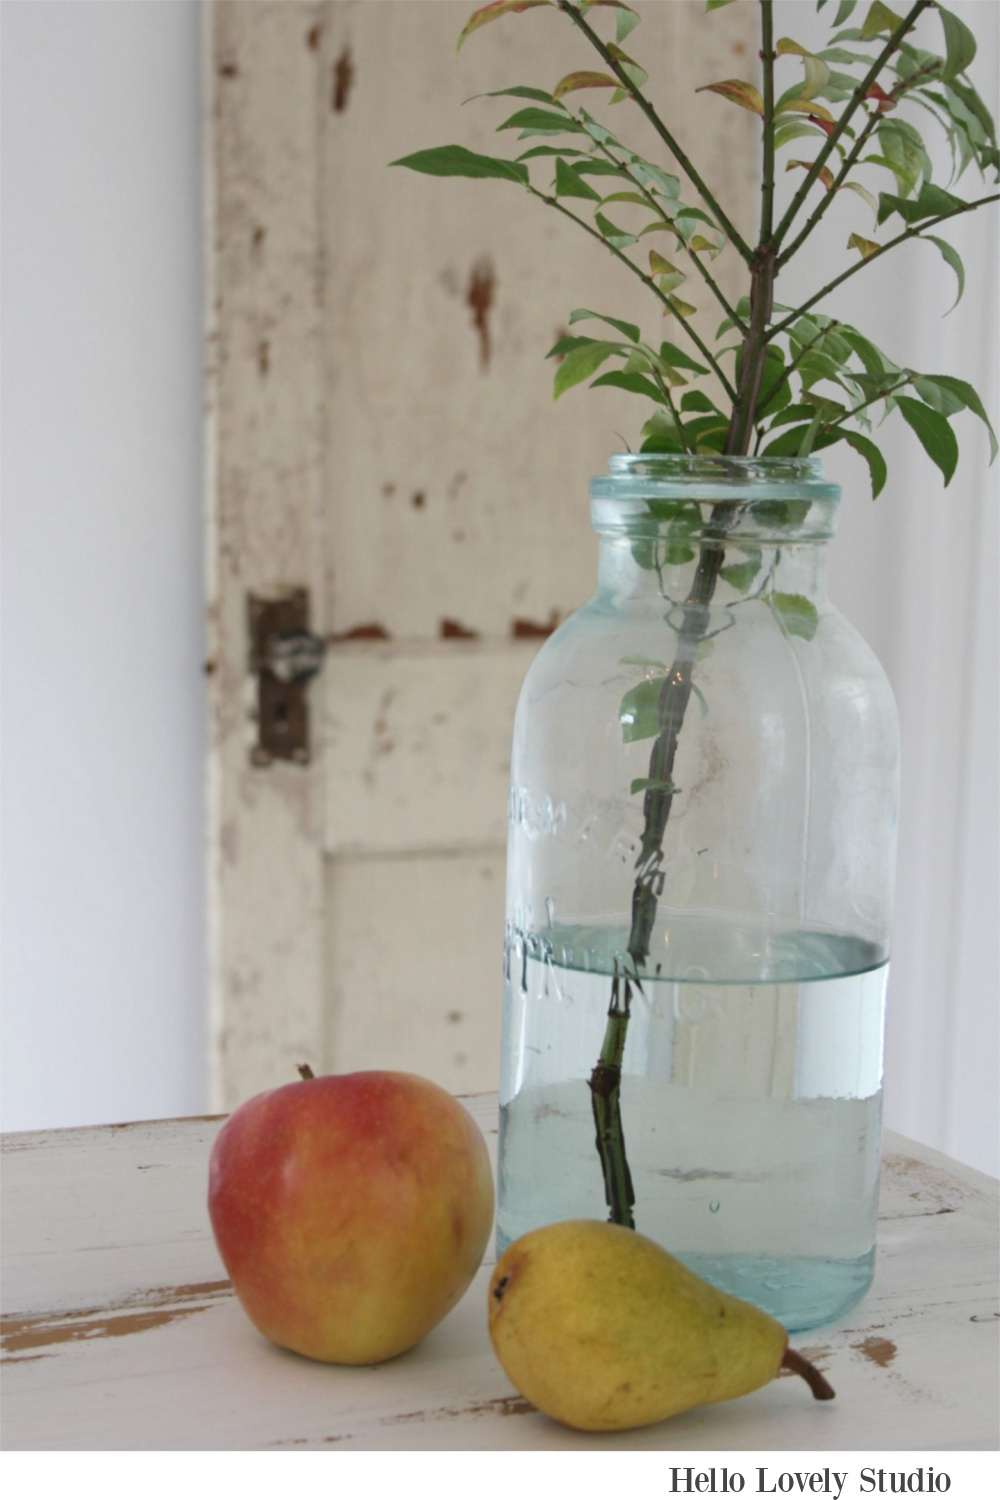 Peaceful, soft farmhouse still life with green mason jar, fruit, and a peely painted door - Hello Lovely Studio.